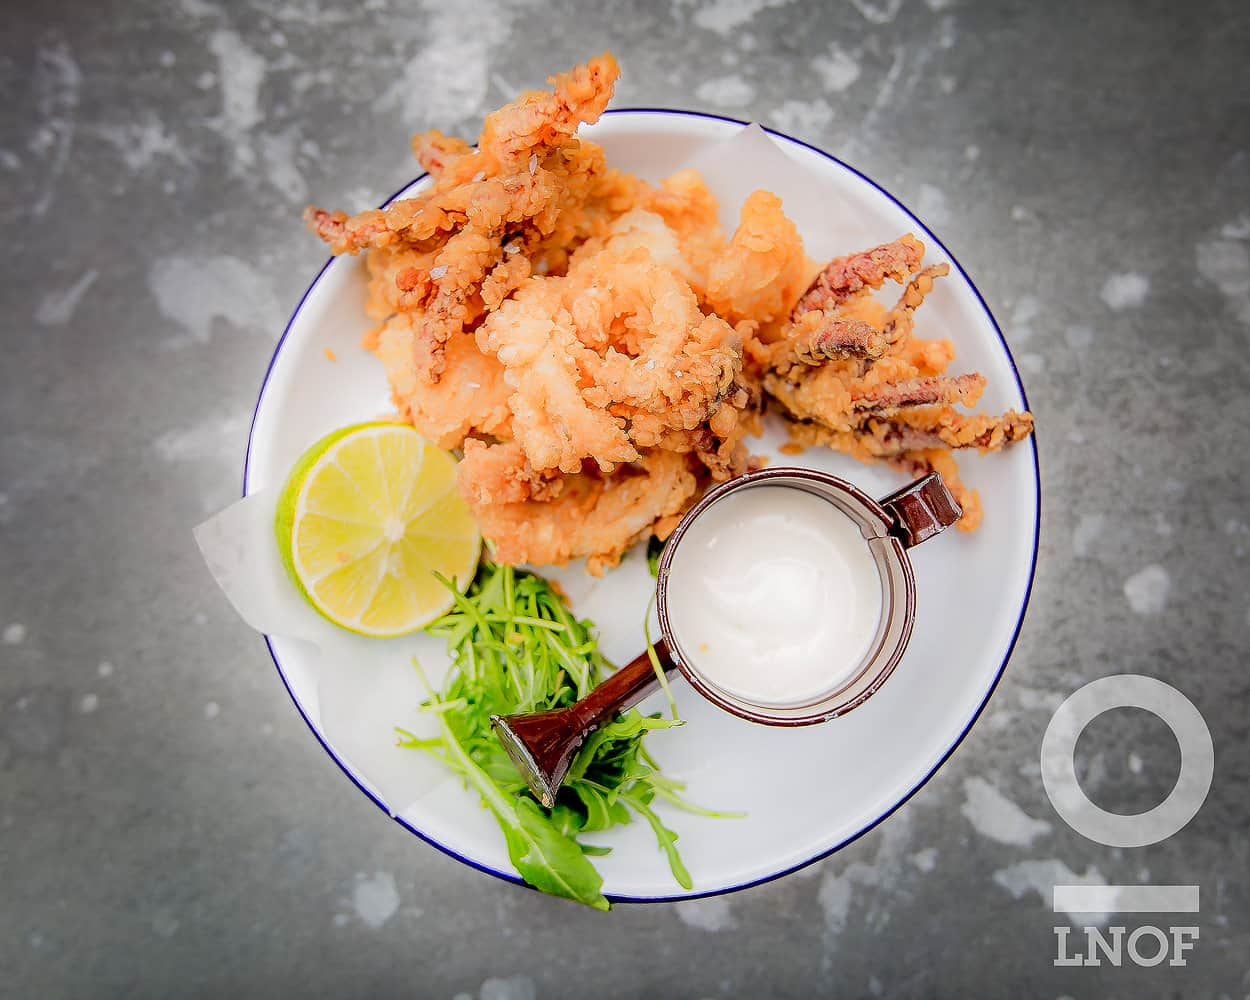 Calamari with lemon mayonnaise at The Botanist in Newcastle